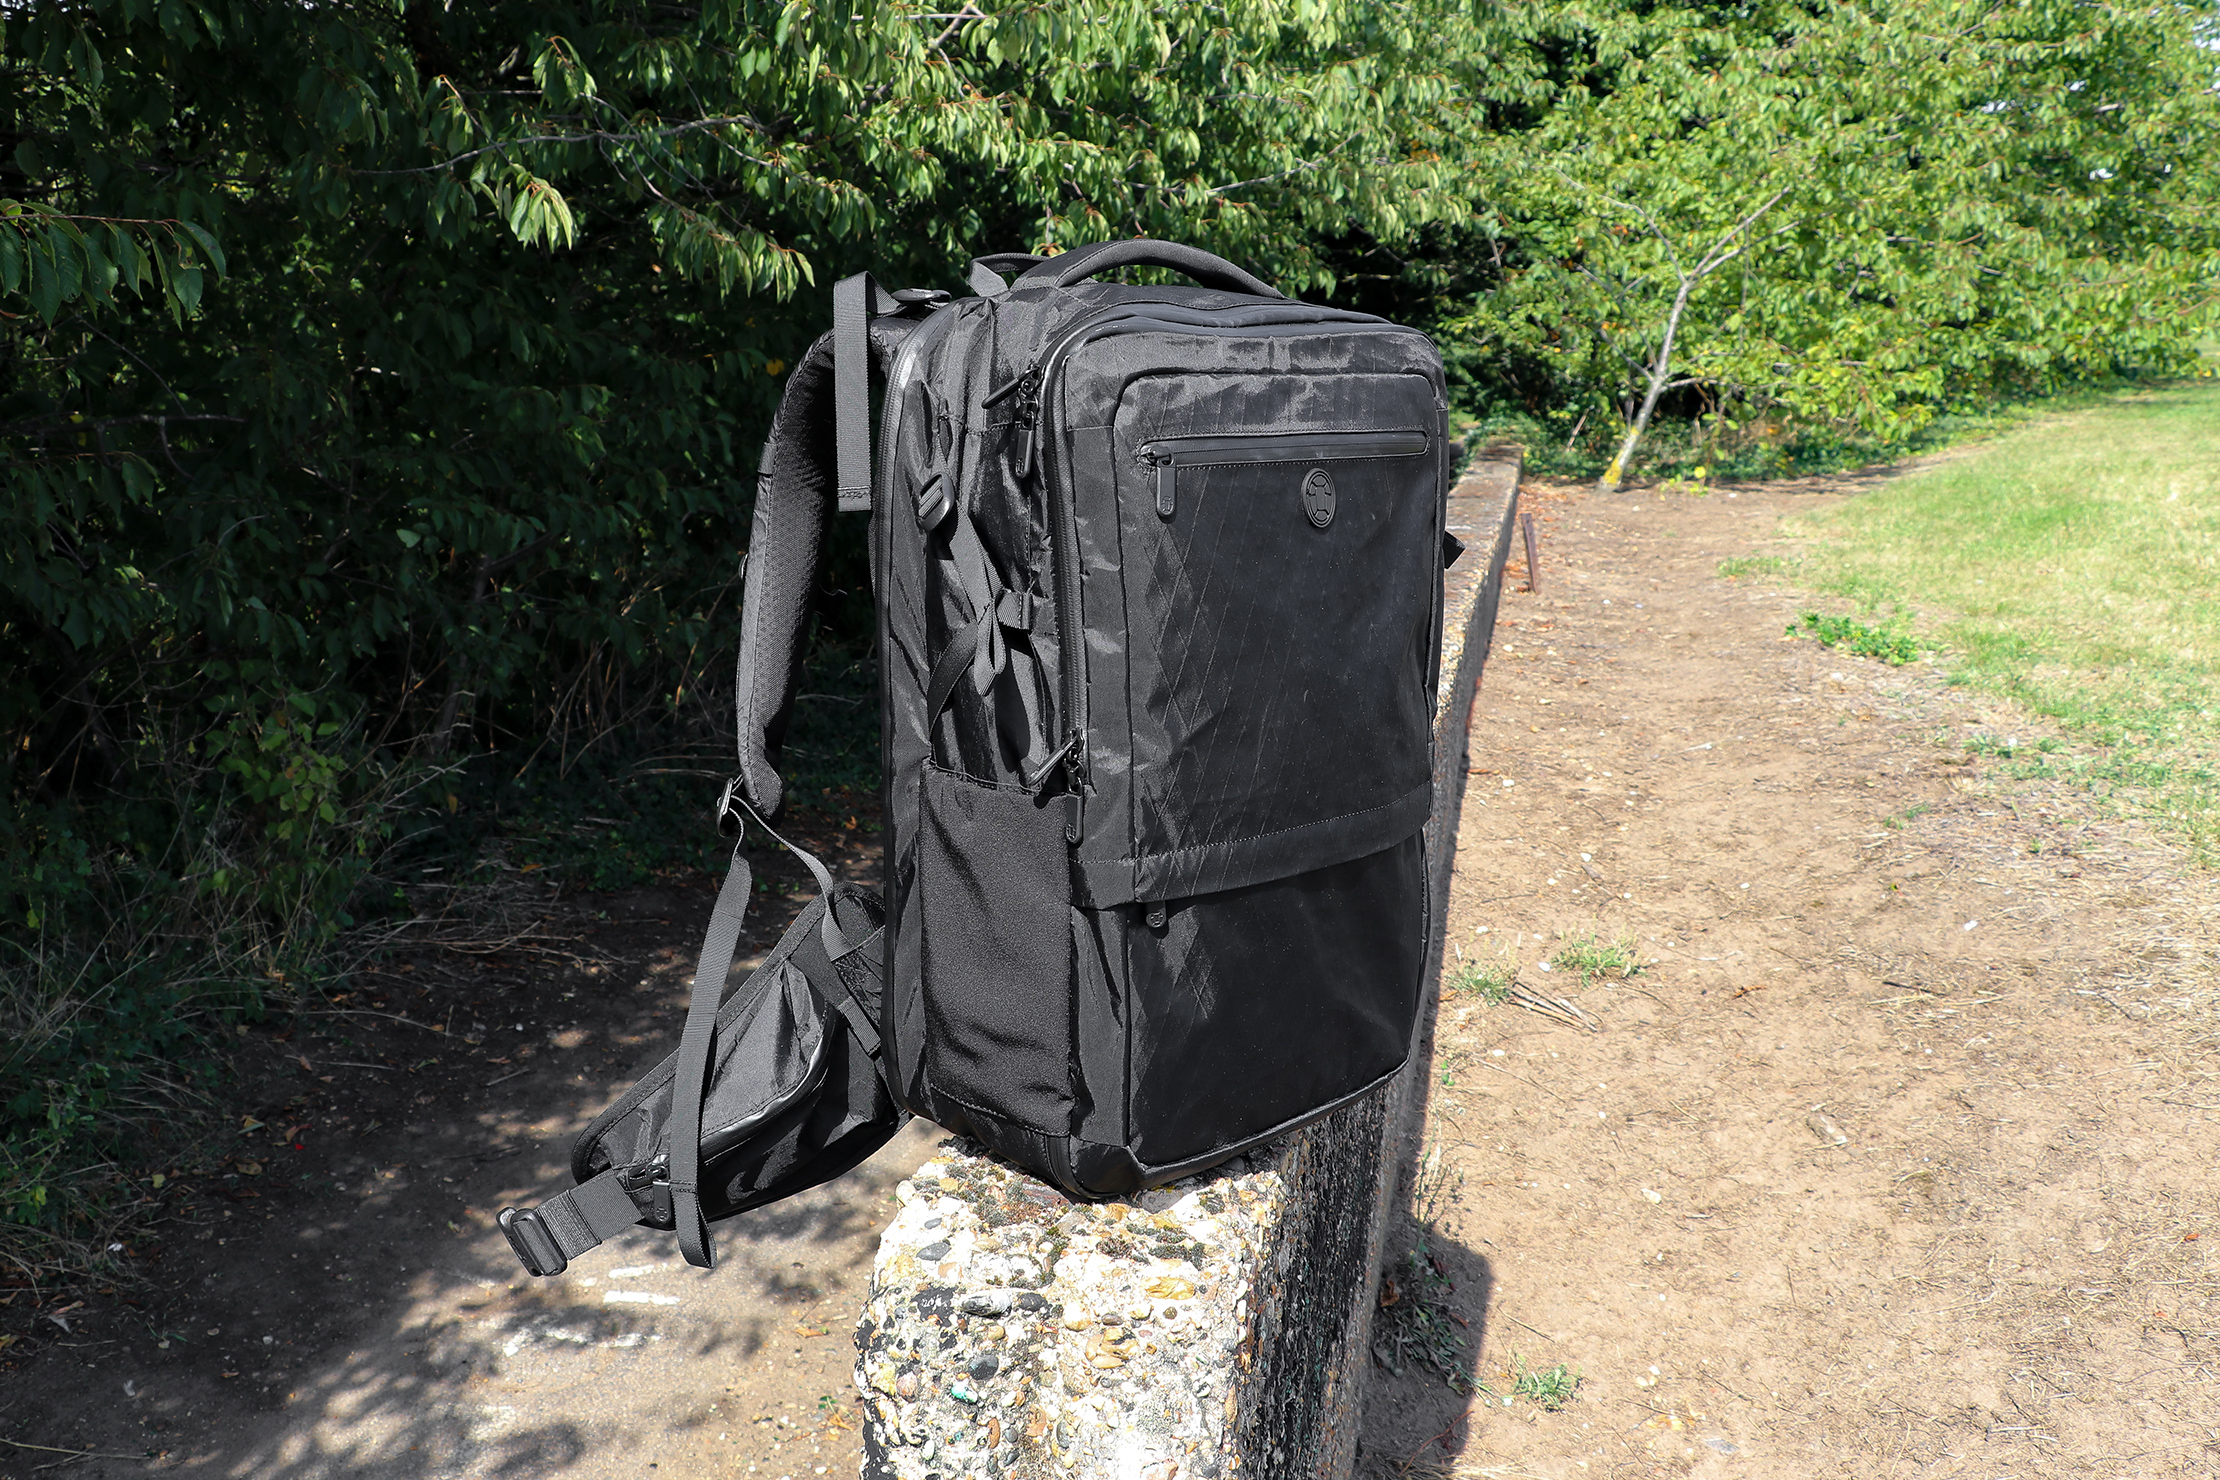 Tortuga Outbreaker Backpack Standing On Its Own